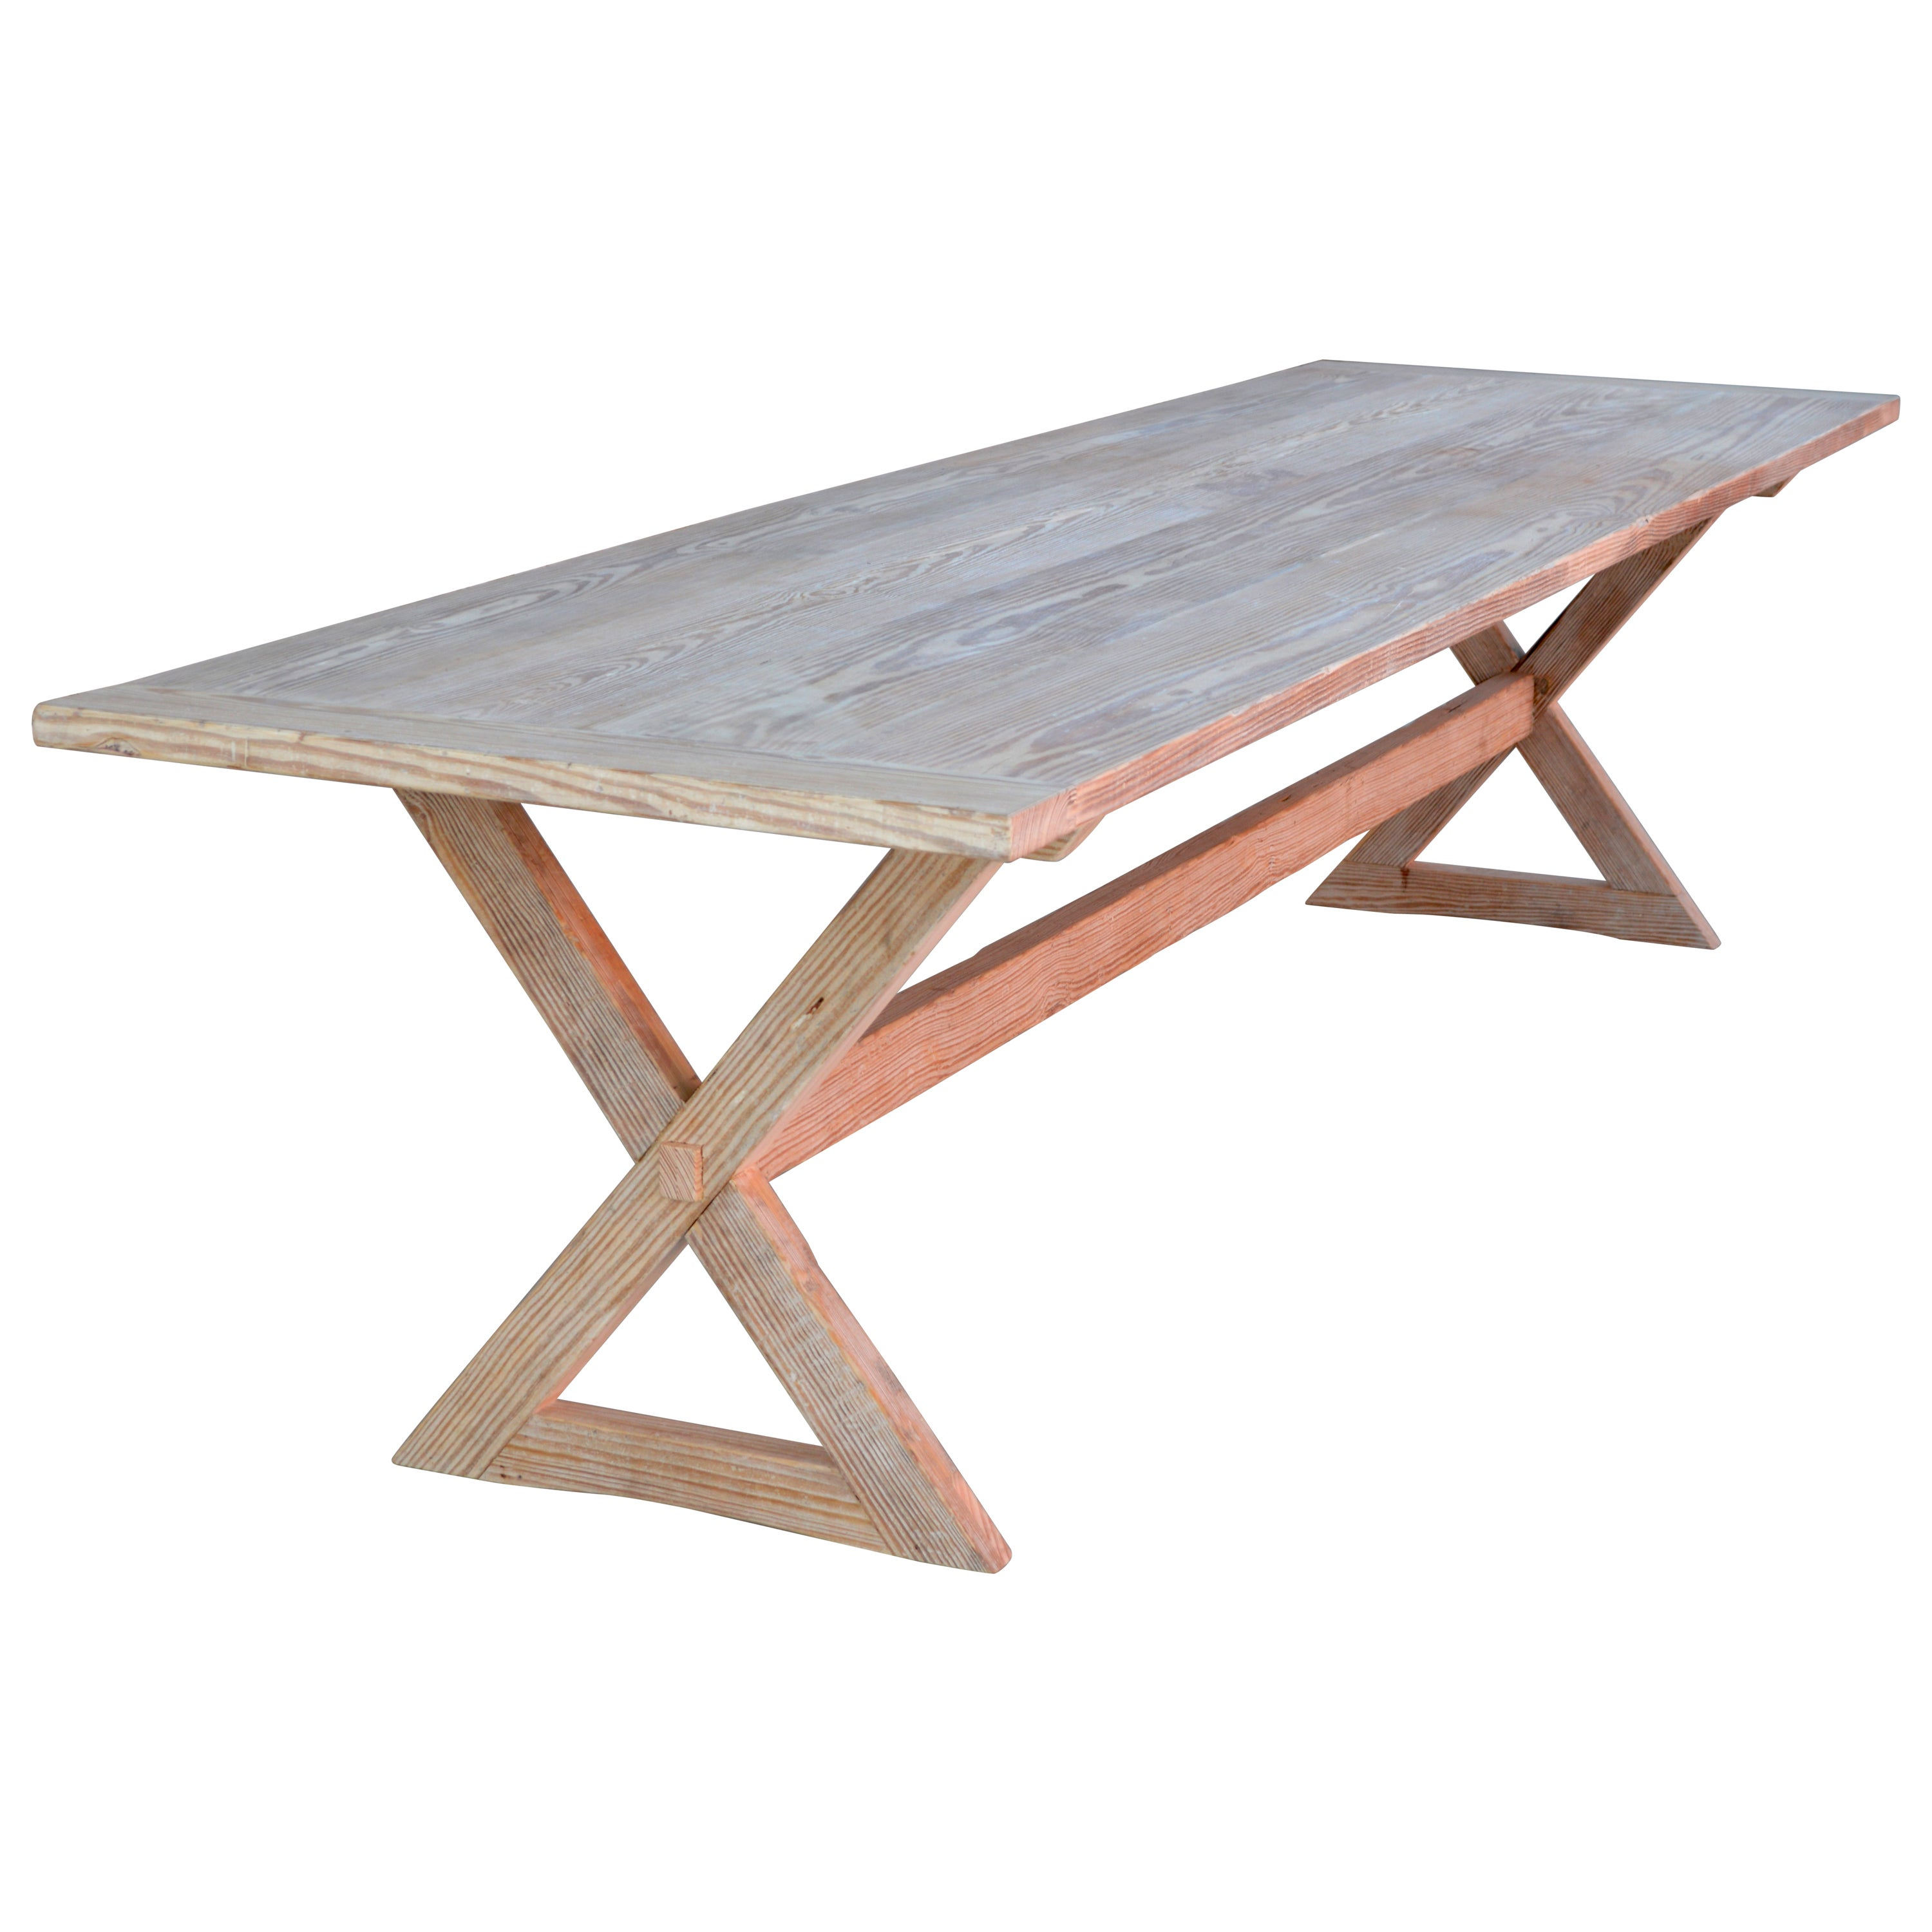 Trestle Table built in Vintage Heart Pine, Custom Made by Petersen Antiques